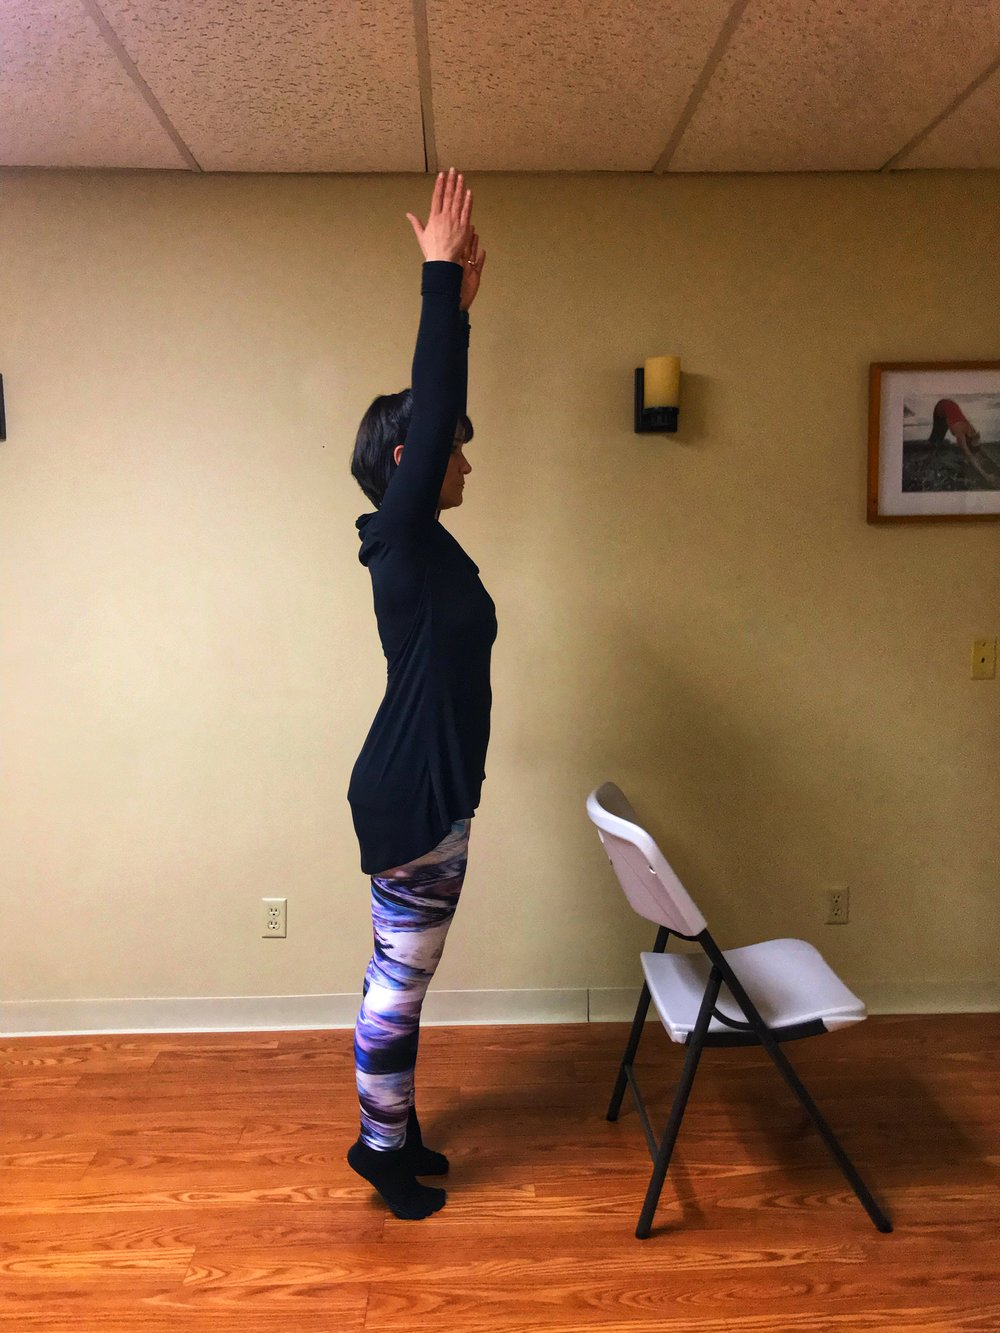 To make this pose harder, extend your arms upright as you lift your heels. To make this pose easier, sit down in a chair and life your heels off the floor, hold, then lower your heels to the floor. Repeat.